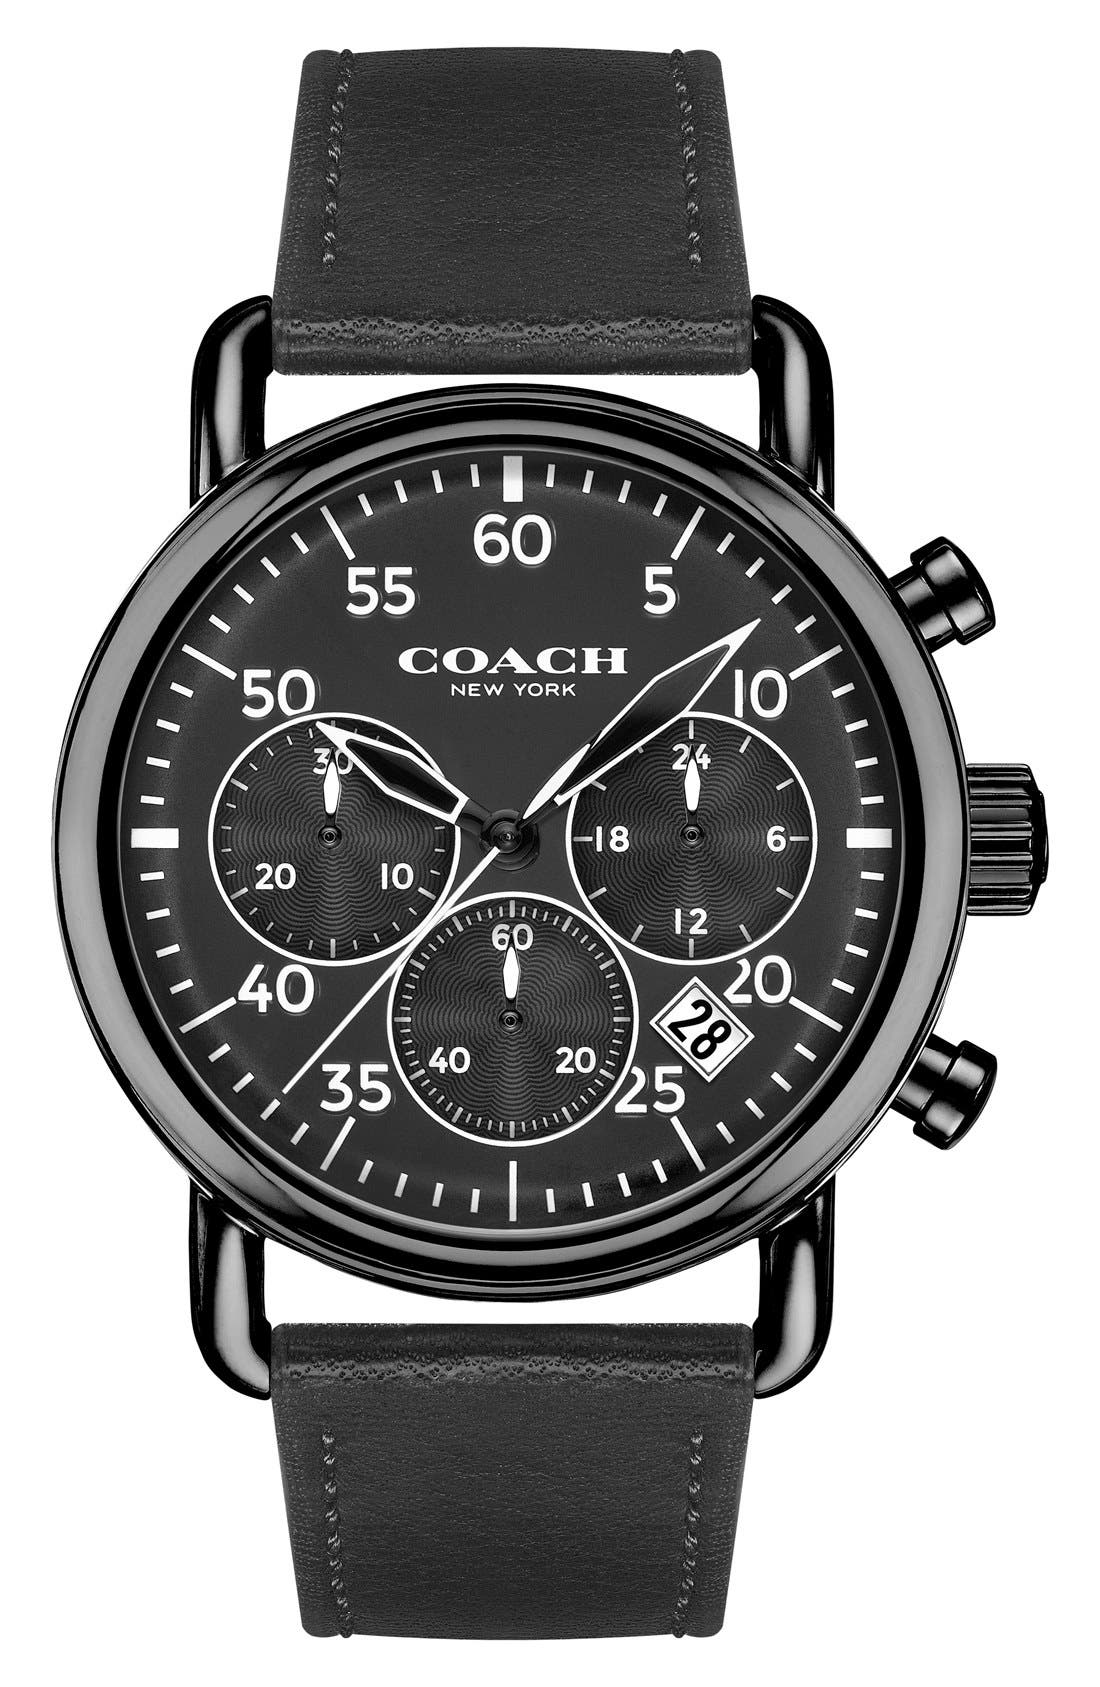 COACH 'Delancey' Chronograph Leather Strap Watch, 42mm